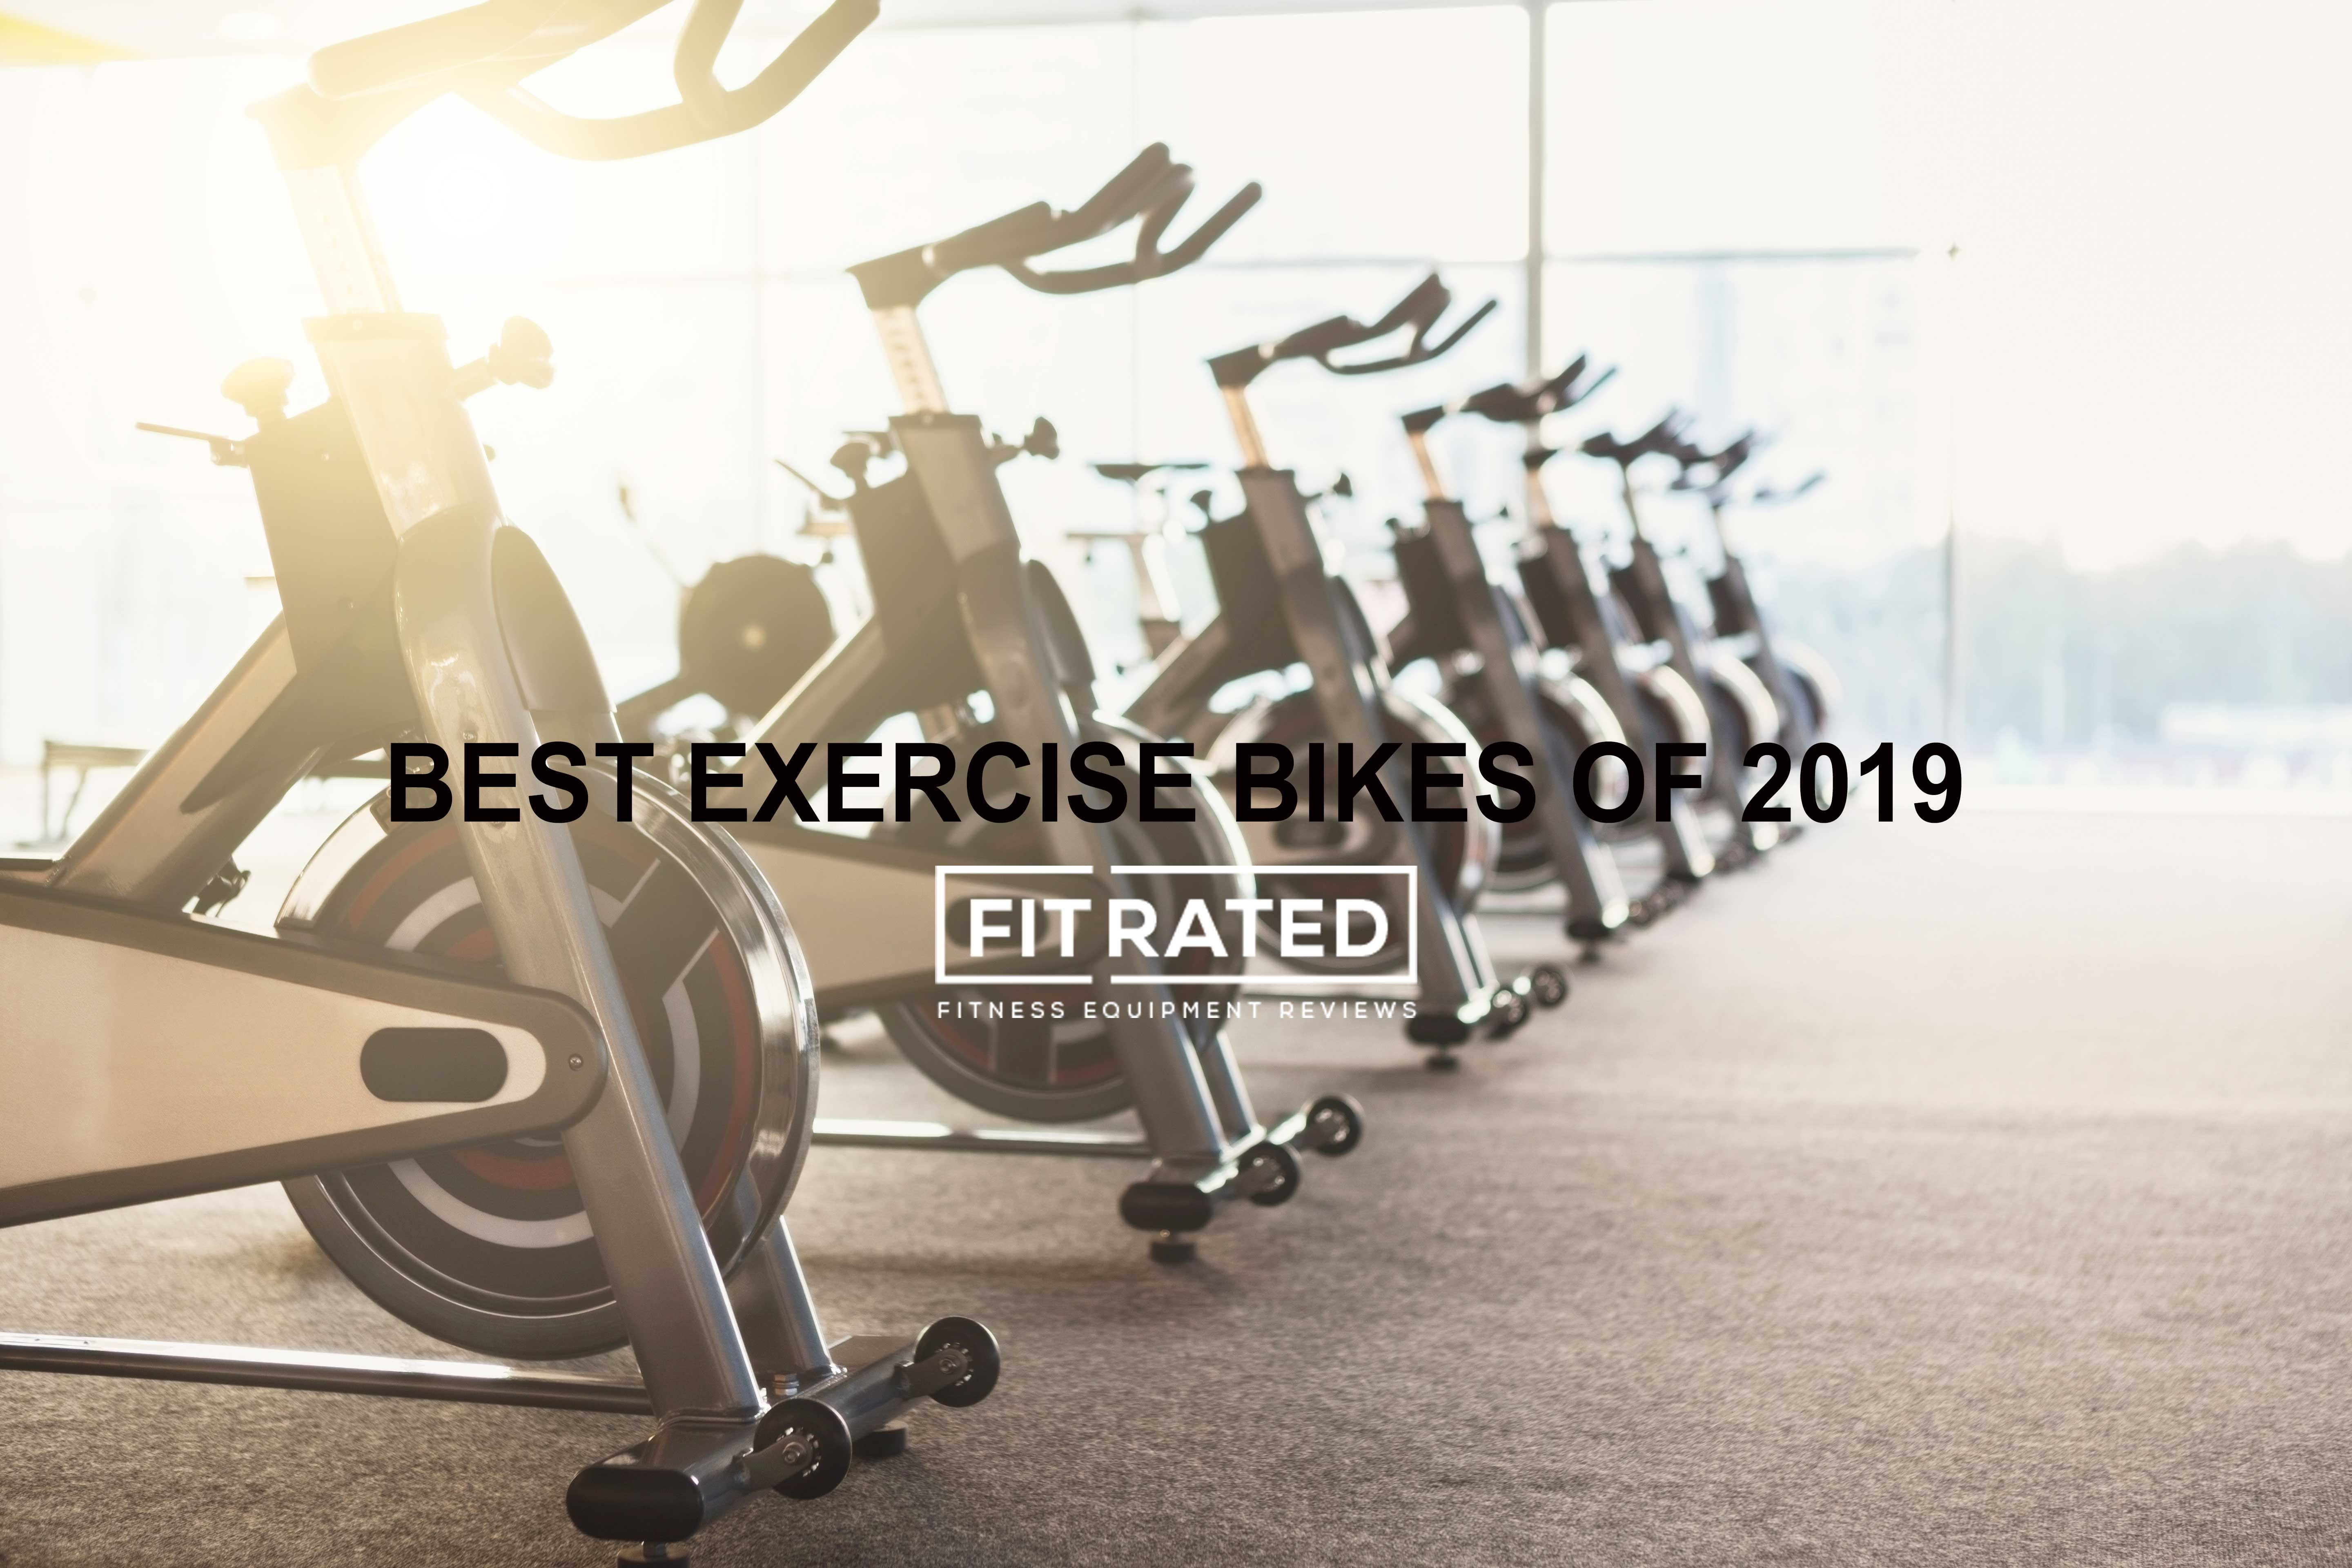 Through Our Five Best Exercise Bike Values Chart You Can Save